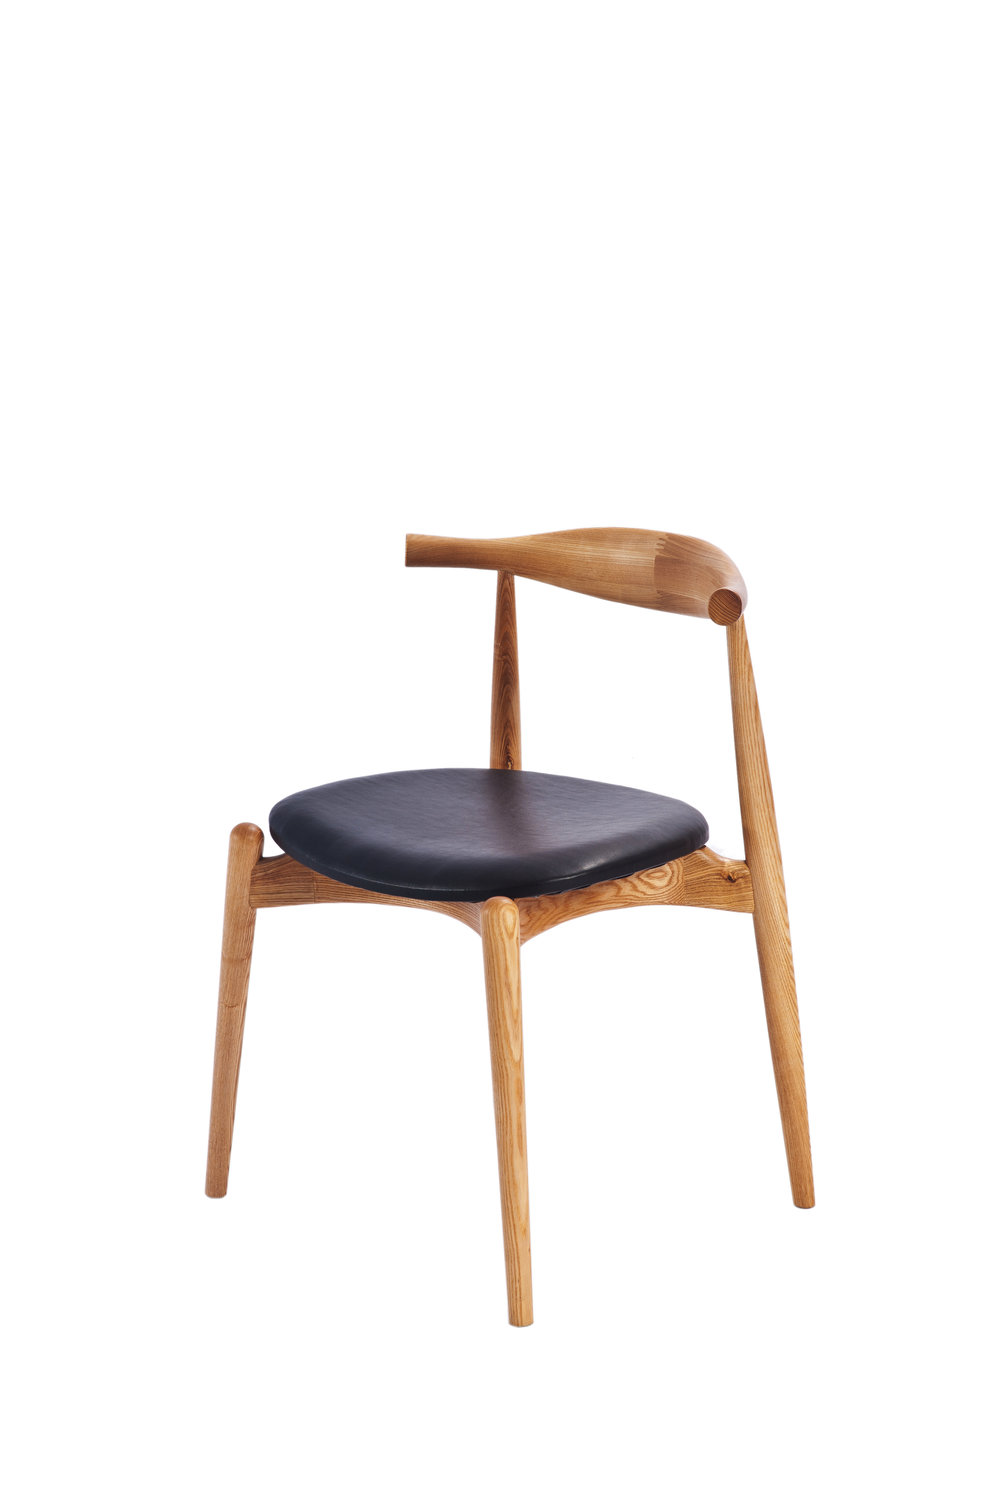 hans wegner style elbow oak chair with round black leather seat